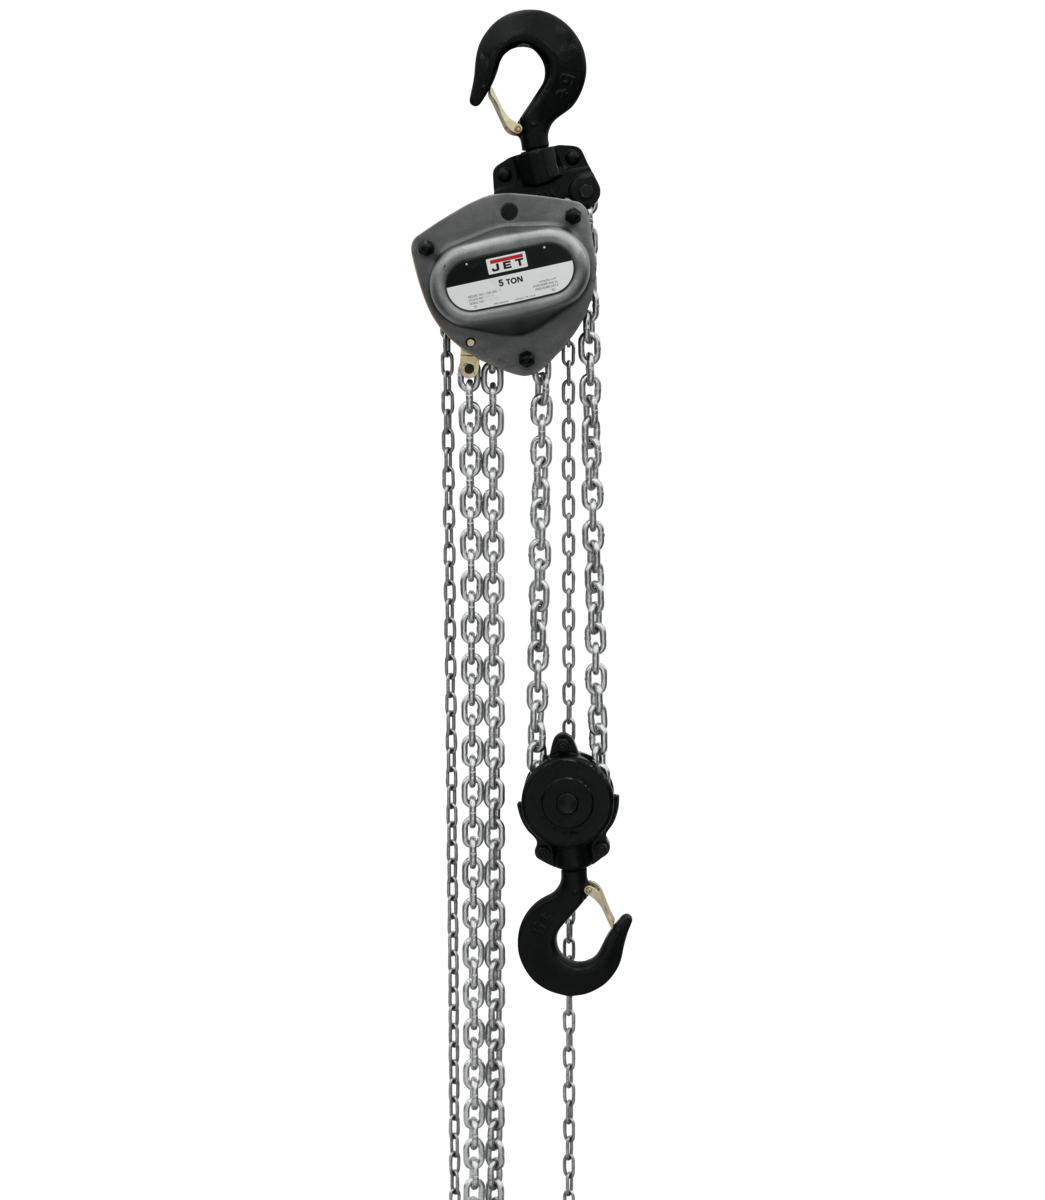 L-100-500WO-20, 5-Ton Hand Chain Hoist With 20' Lift & Overload Protection